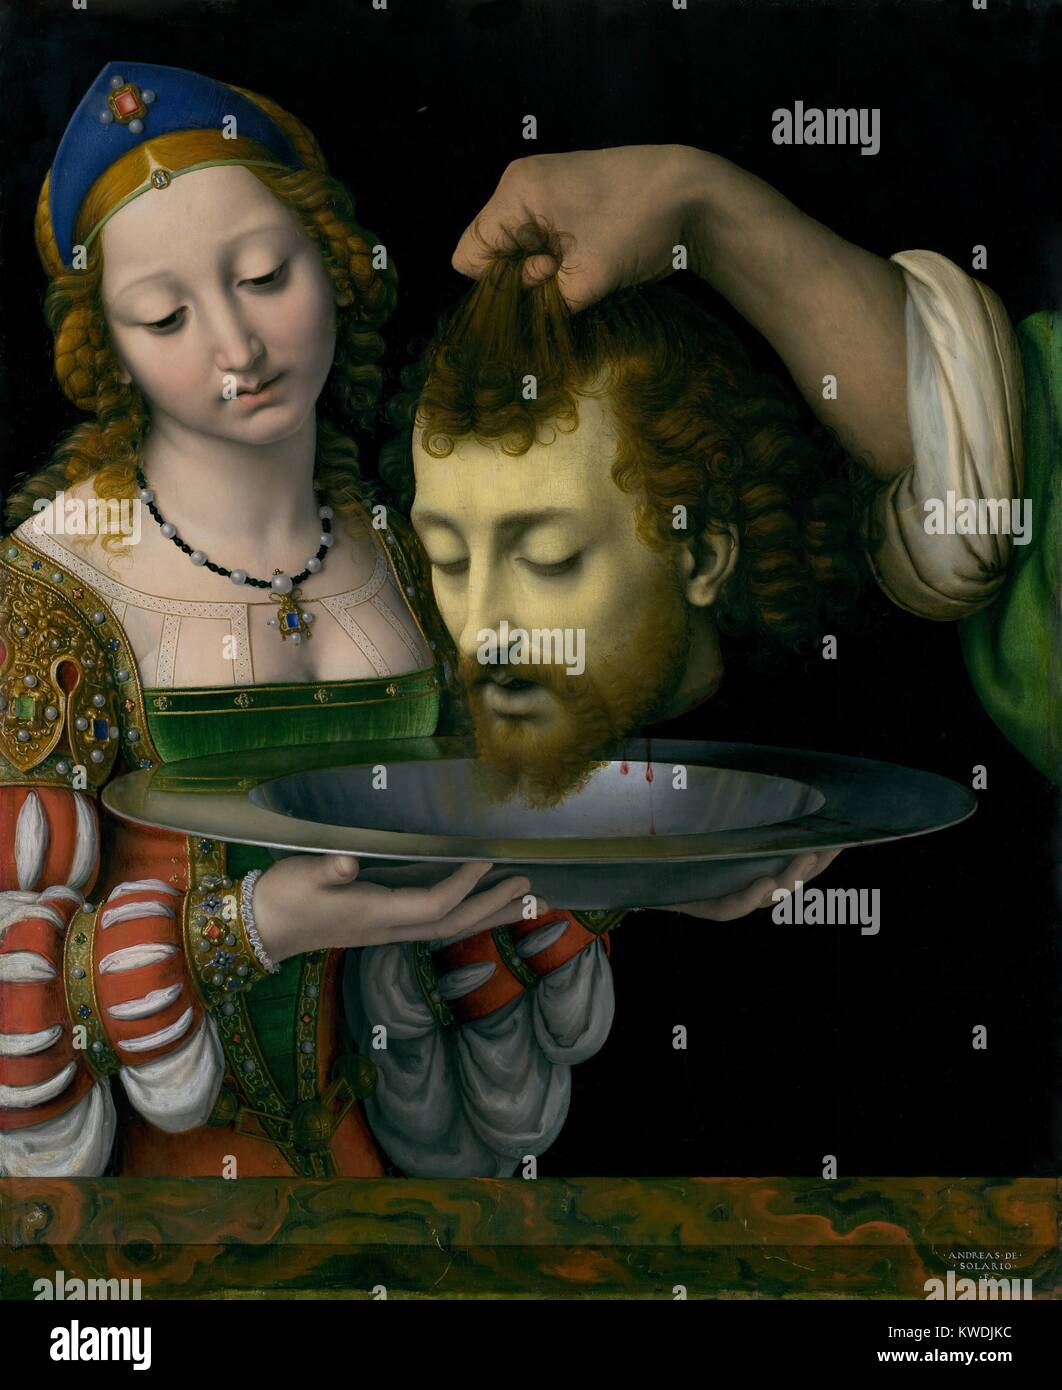 SALOME WITH HEAD OF JOHN THE BAPTIST, by Andrea Solario, 1490-1524, Italian Renaissance oil painting. There is dramatic - Stock Image